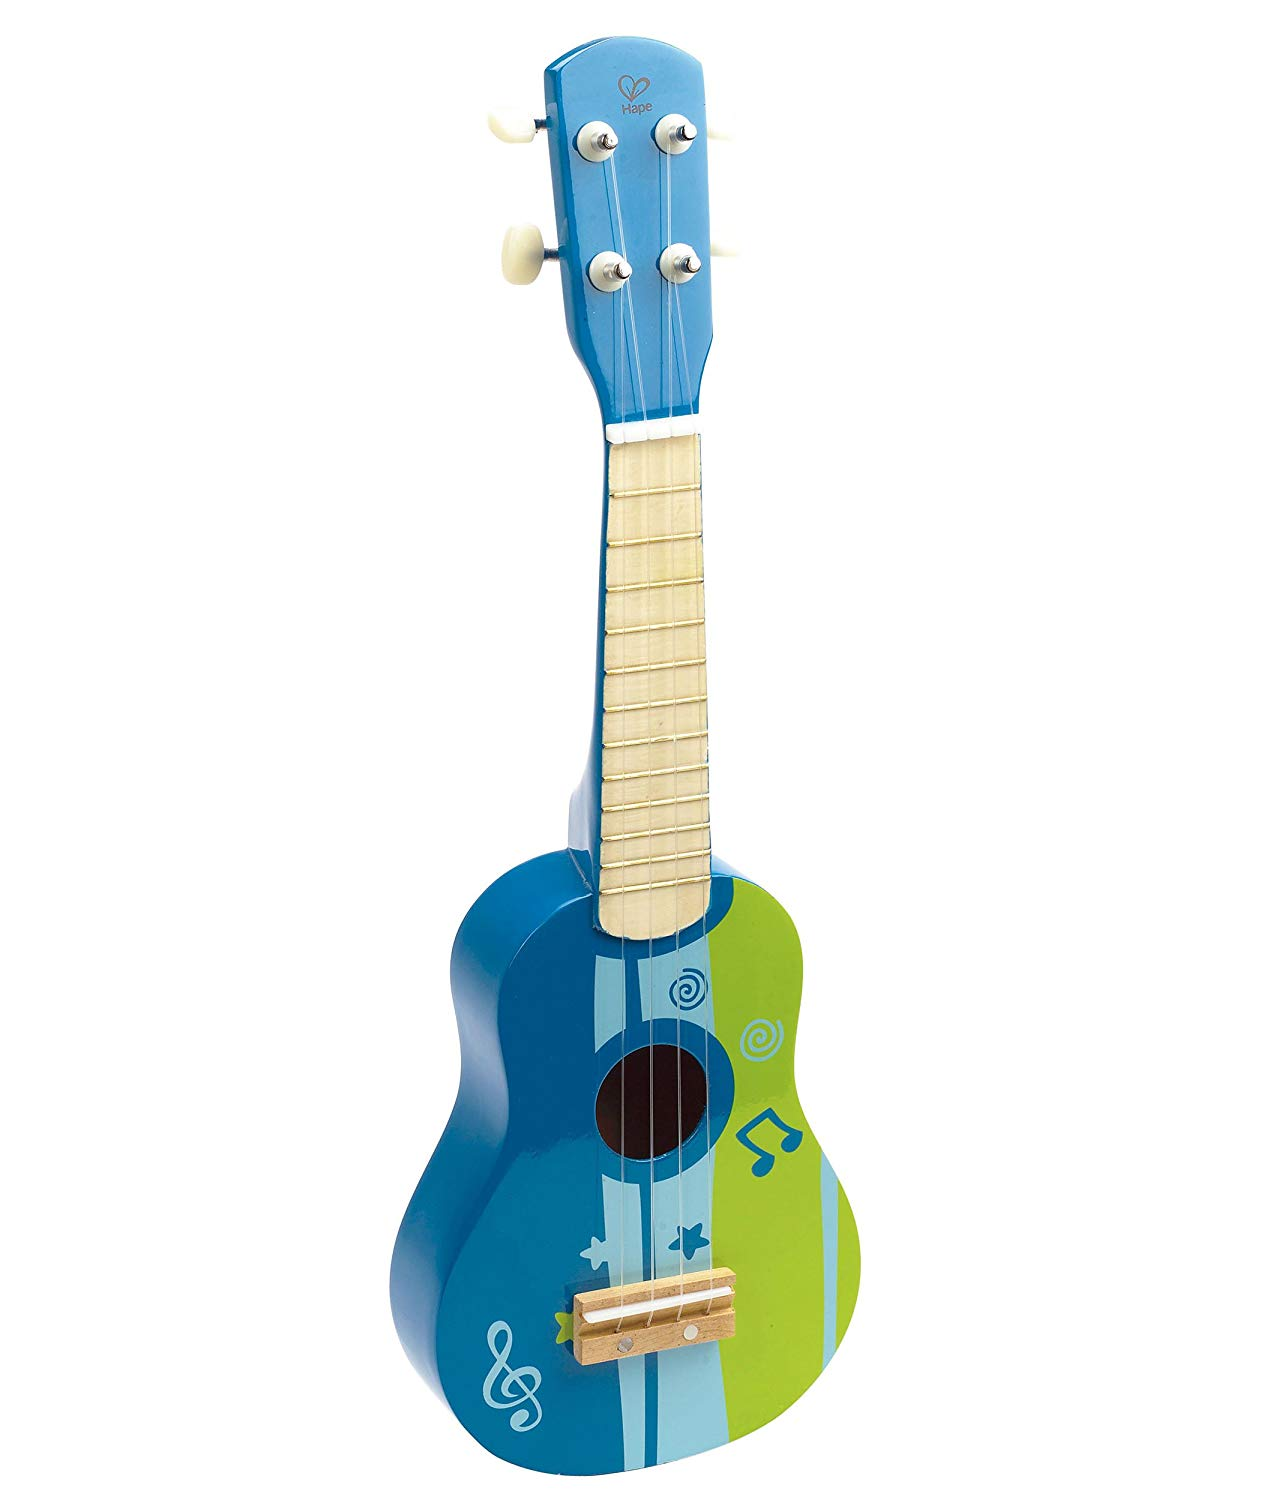 Hape Kid's Wooden Toy Ukulele in Blue